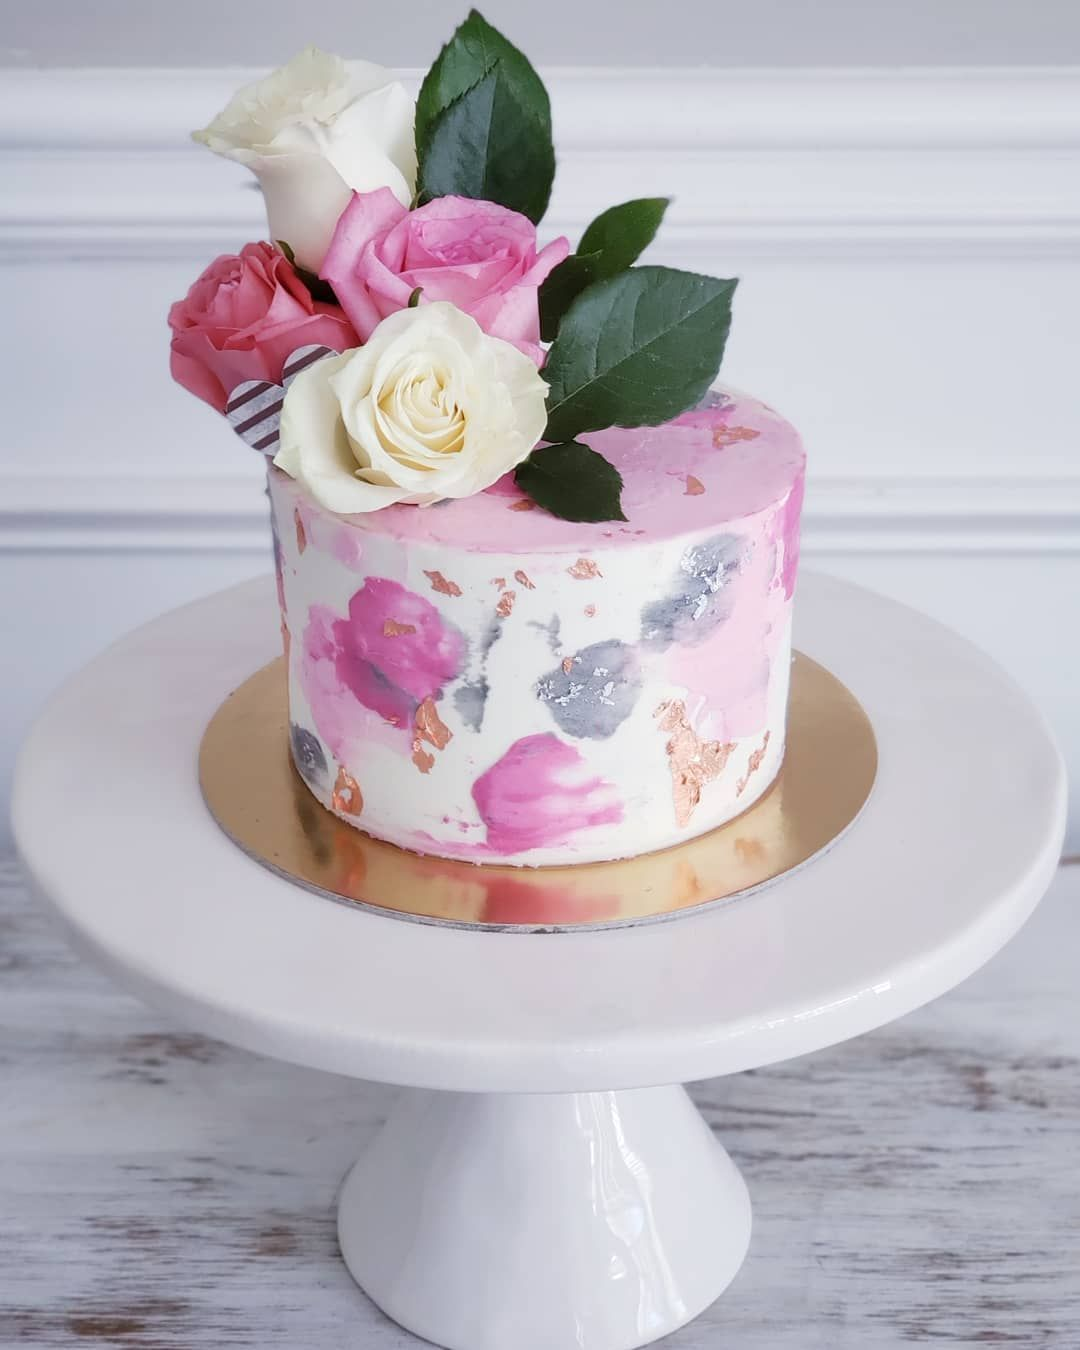 Flower cakes are my favorite cakes 🌷. . . . . .